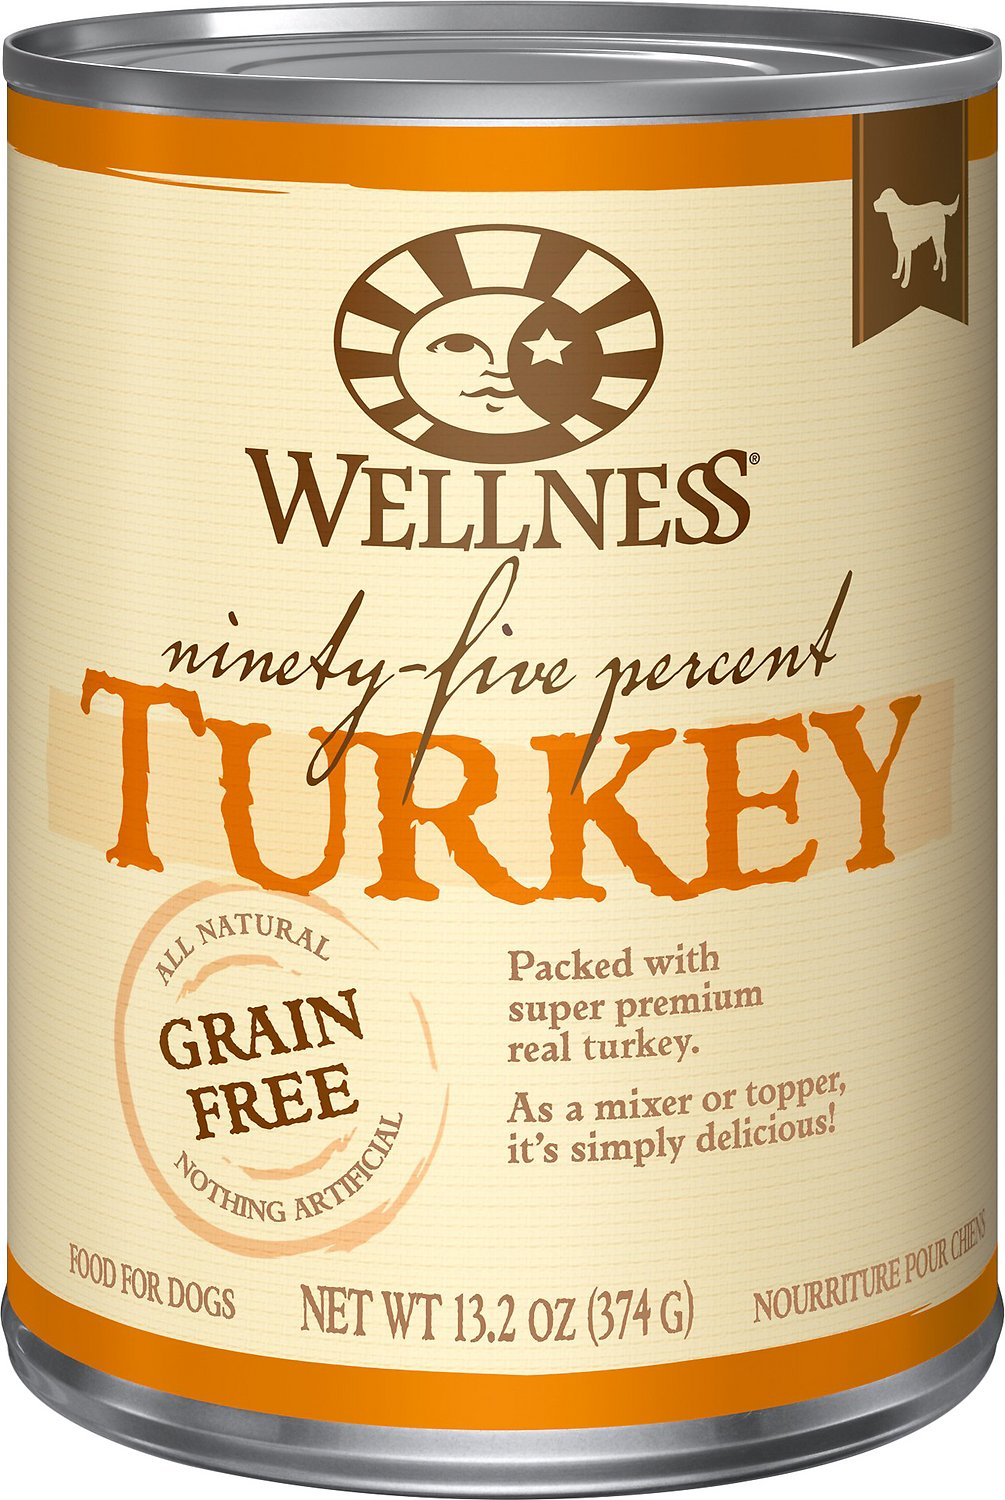 Wellness 95% Turkey Grain-Free Canned Dog Food, 13.2-oz